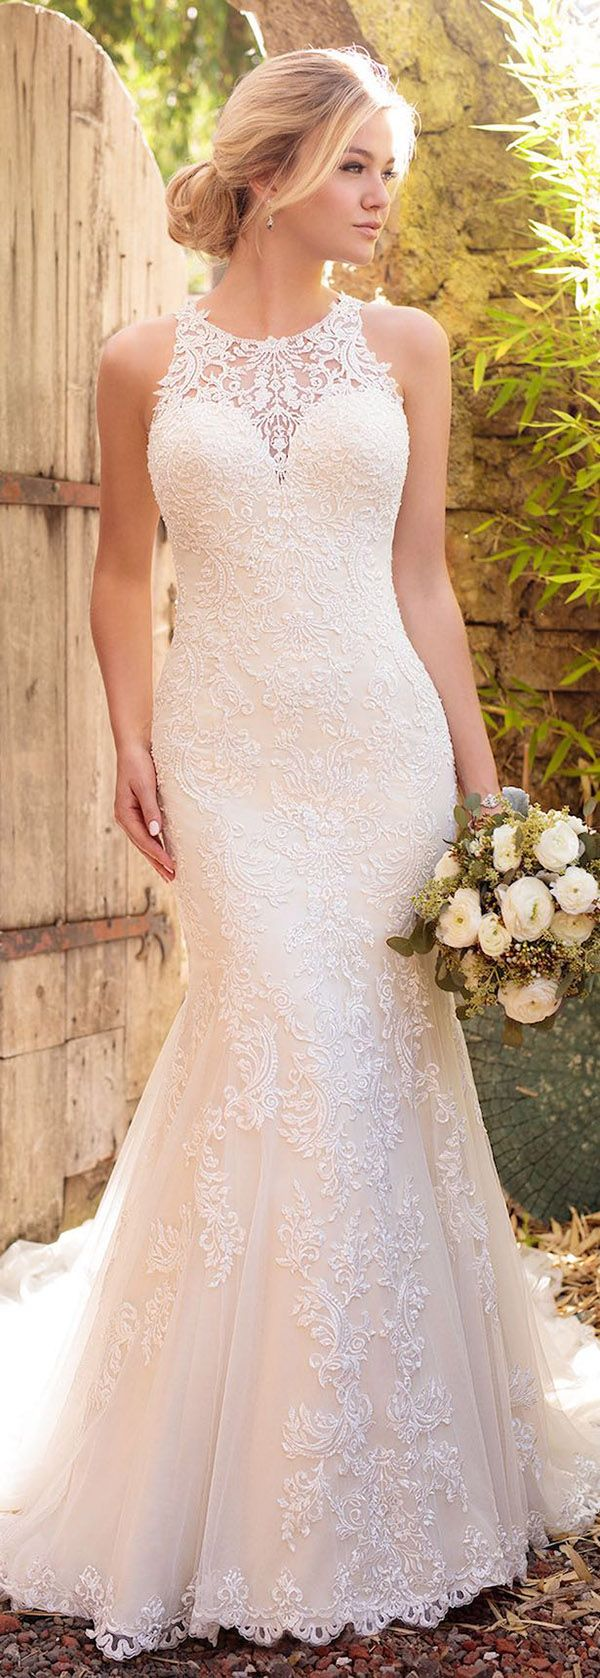 Best 25 wedding dresses ideas on pinterest spring wedding best 25 wedding dresses ideas on pinterest spring wedding dresses wedding dress styles and bridal dresses junglespirit Choice Image